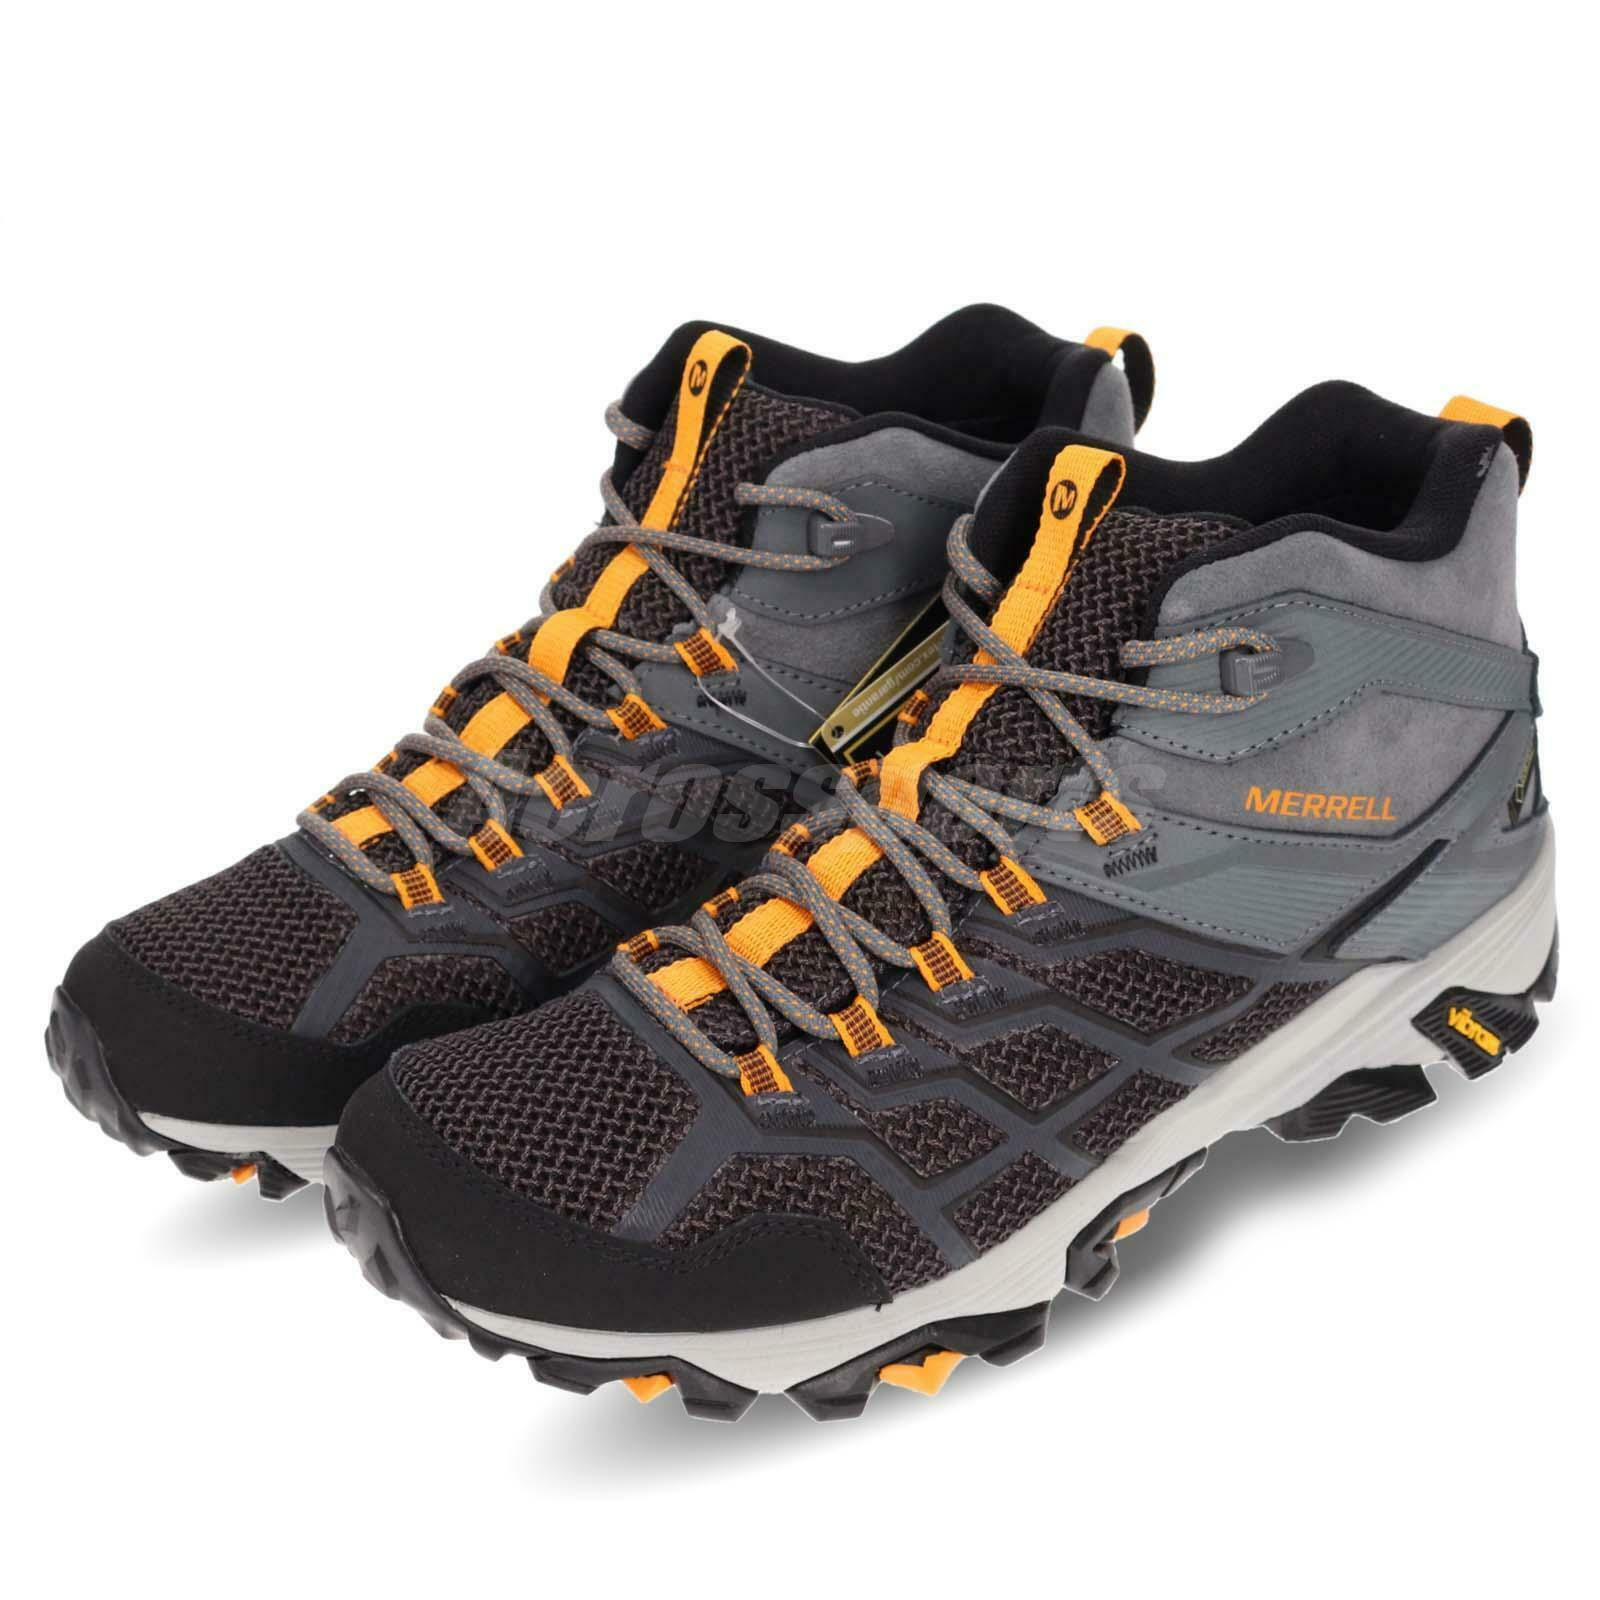 Merrell Moab Moab Moab FST 2 Mid GTX Gore-Tex Uomo donna Outdoors Hiking scarpe Pick 1 6fd892